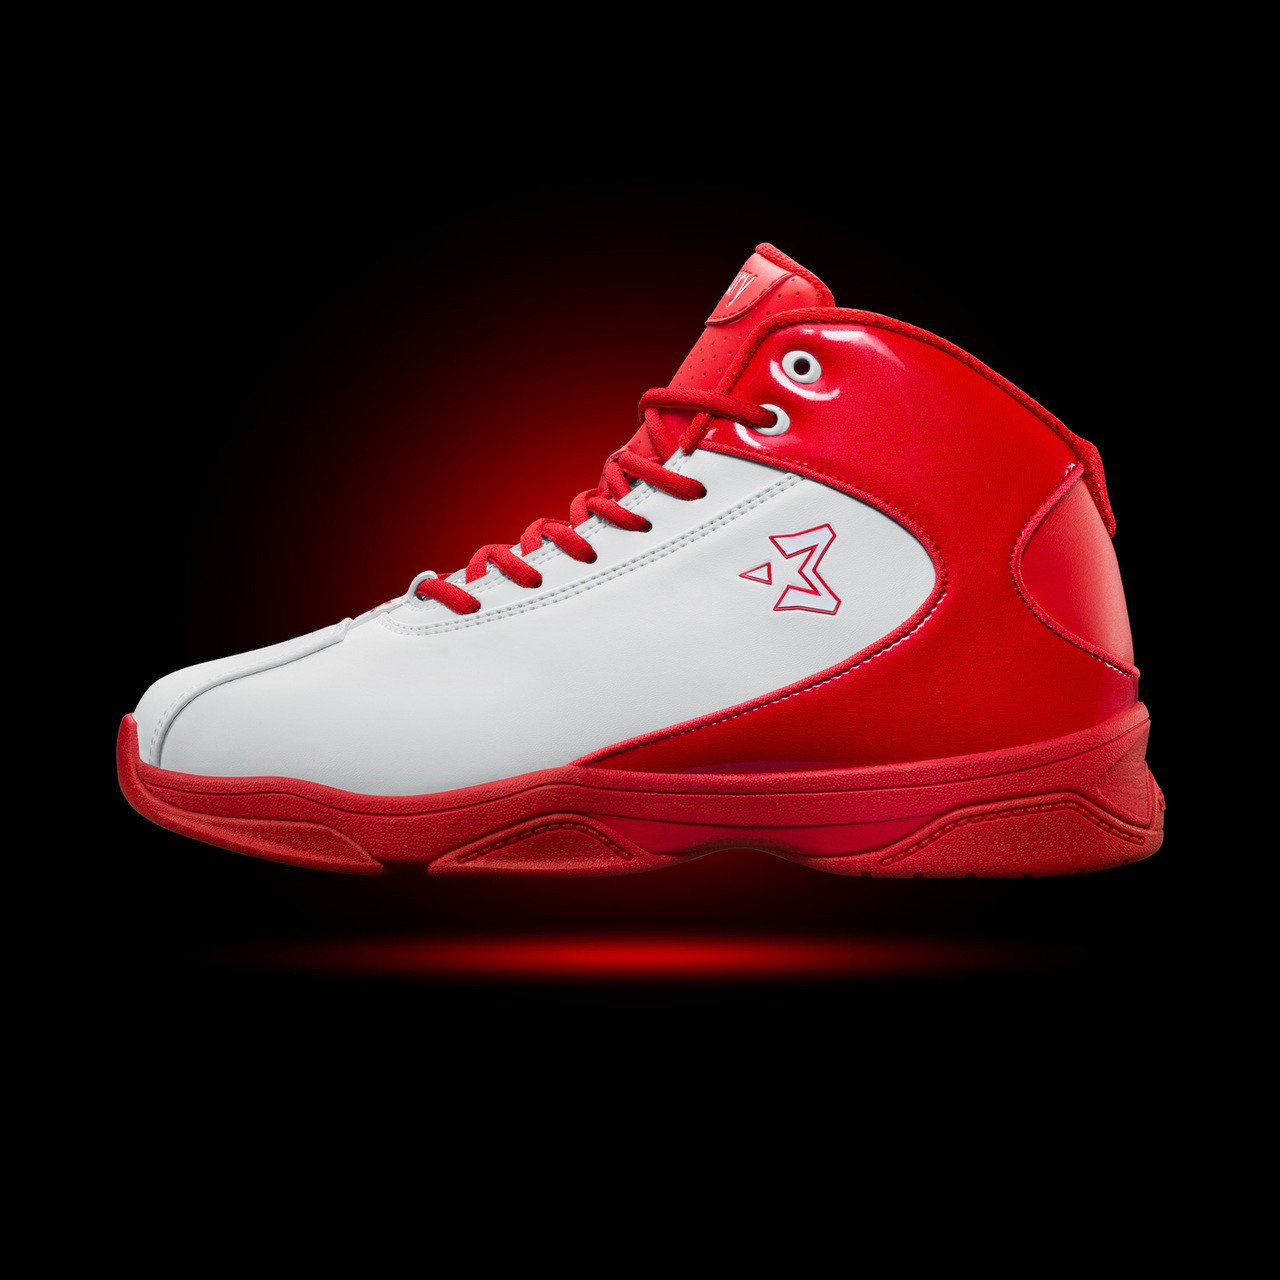 Starbury 3 - White Crimson - Starbury 26525c11d